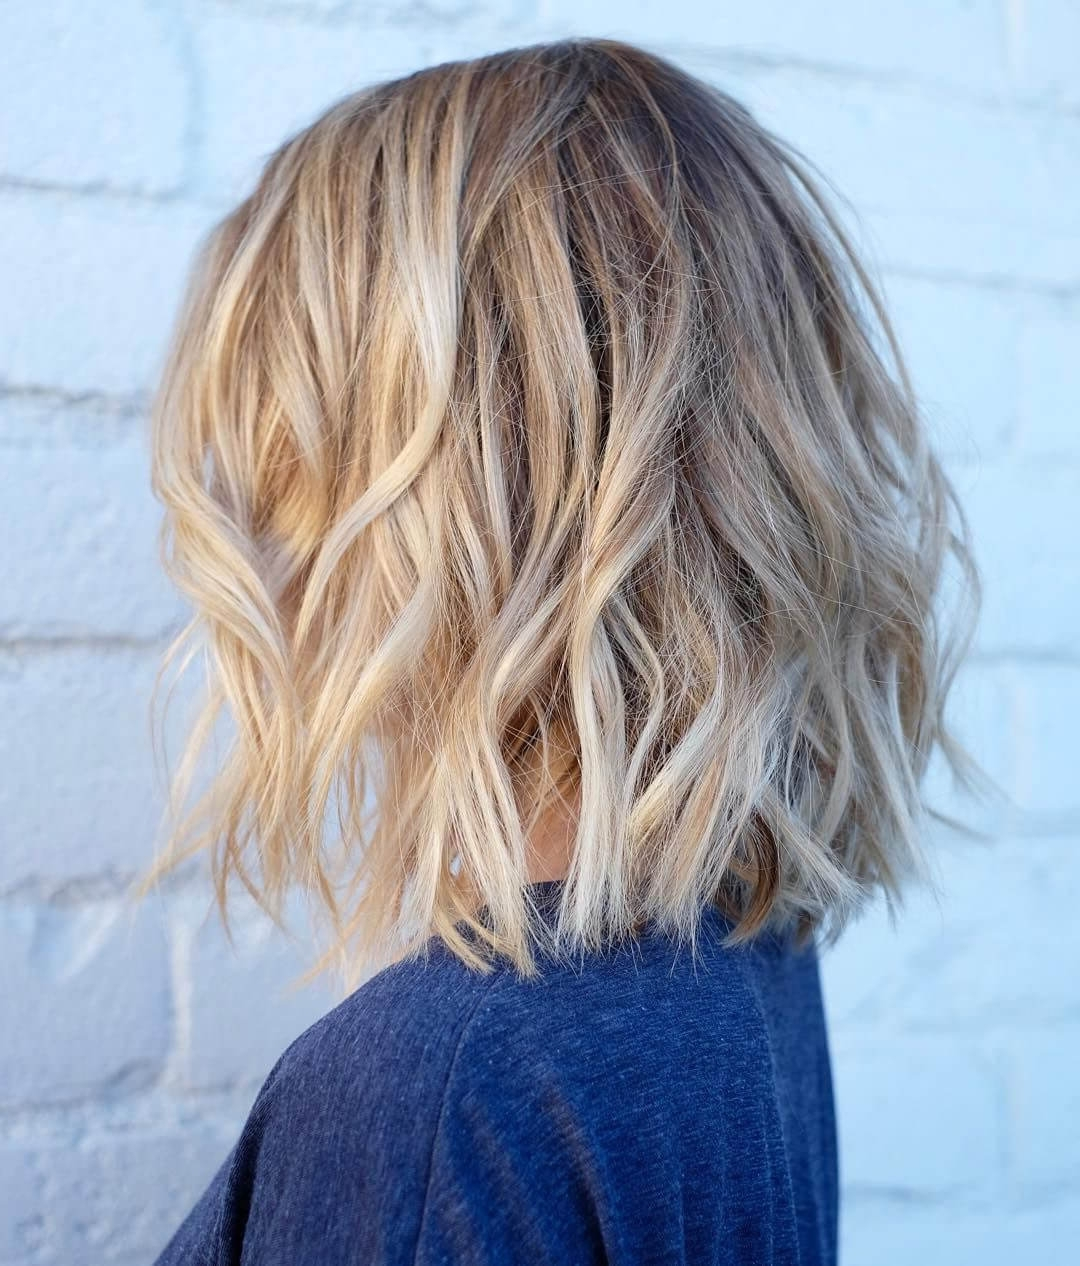 2018 Sexy Sandy Blonde Hairstyles Inside 50 Fresh Short Blonde Hair Ideas To Update Your Style In  (View 1 of 20)